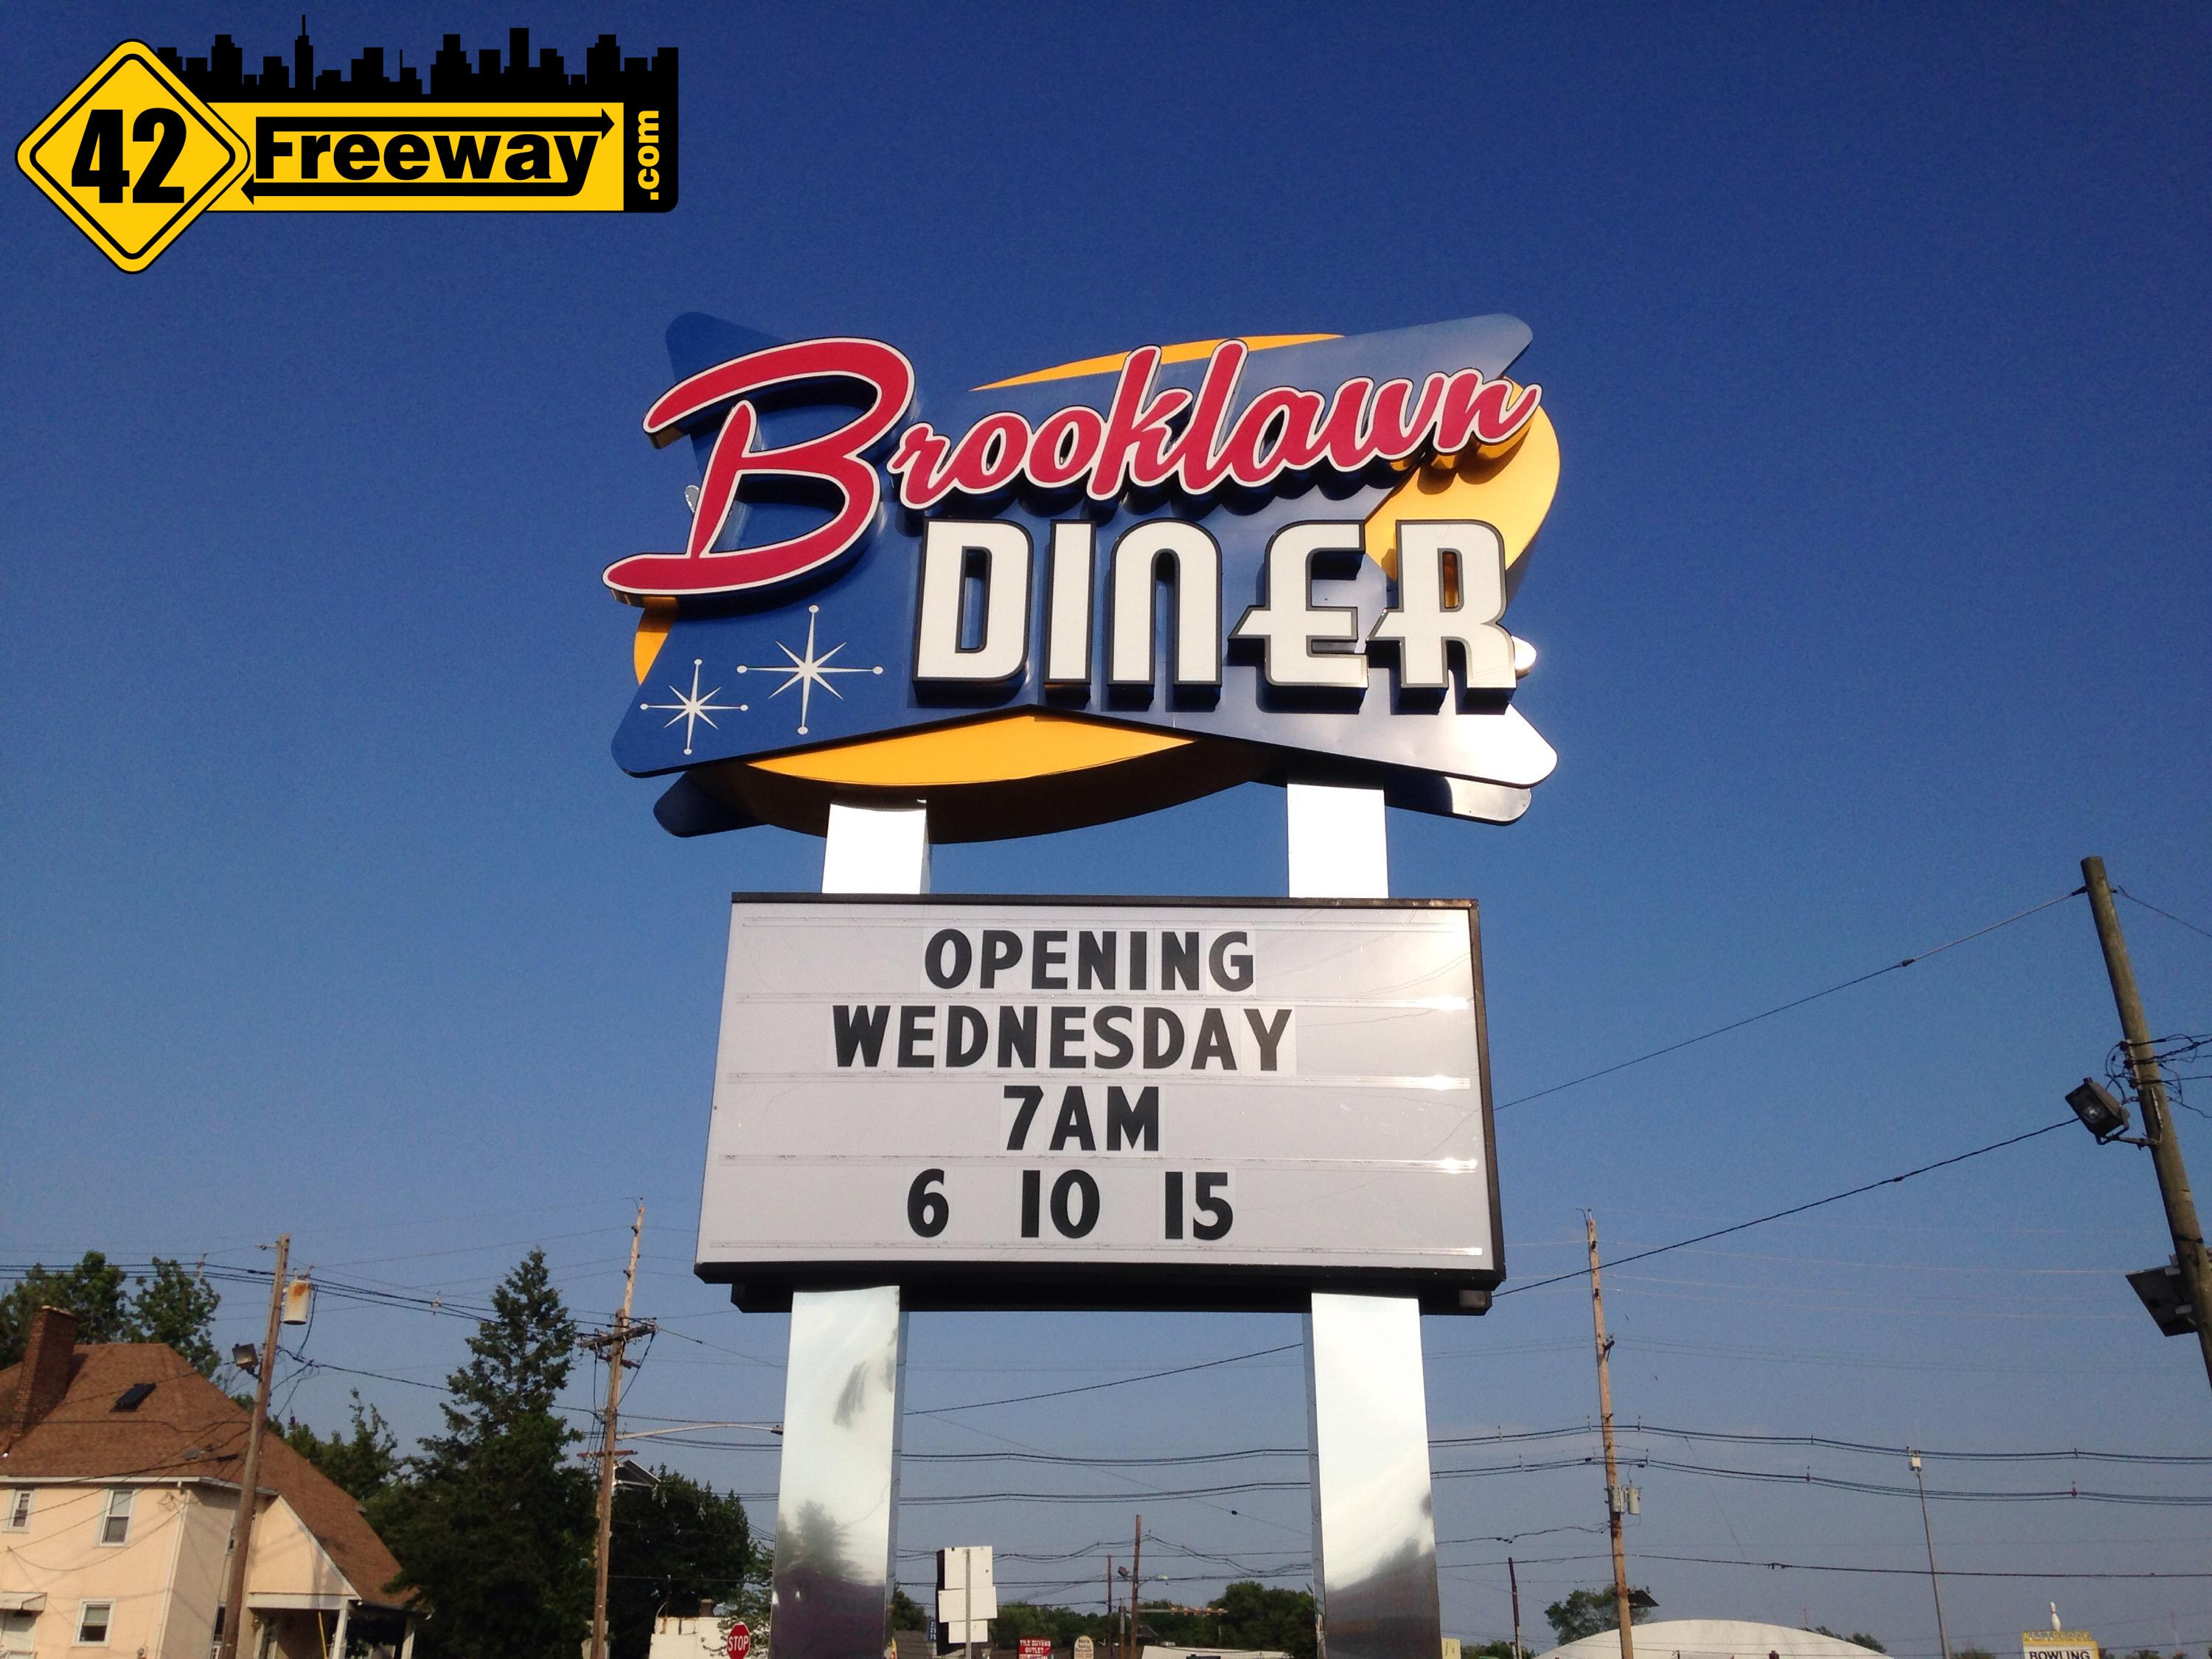 Brooklawn Diner Opens Wednesday June 10th 7am